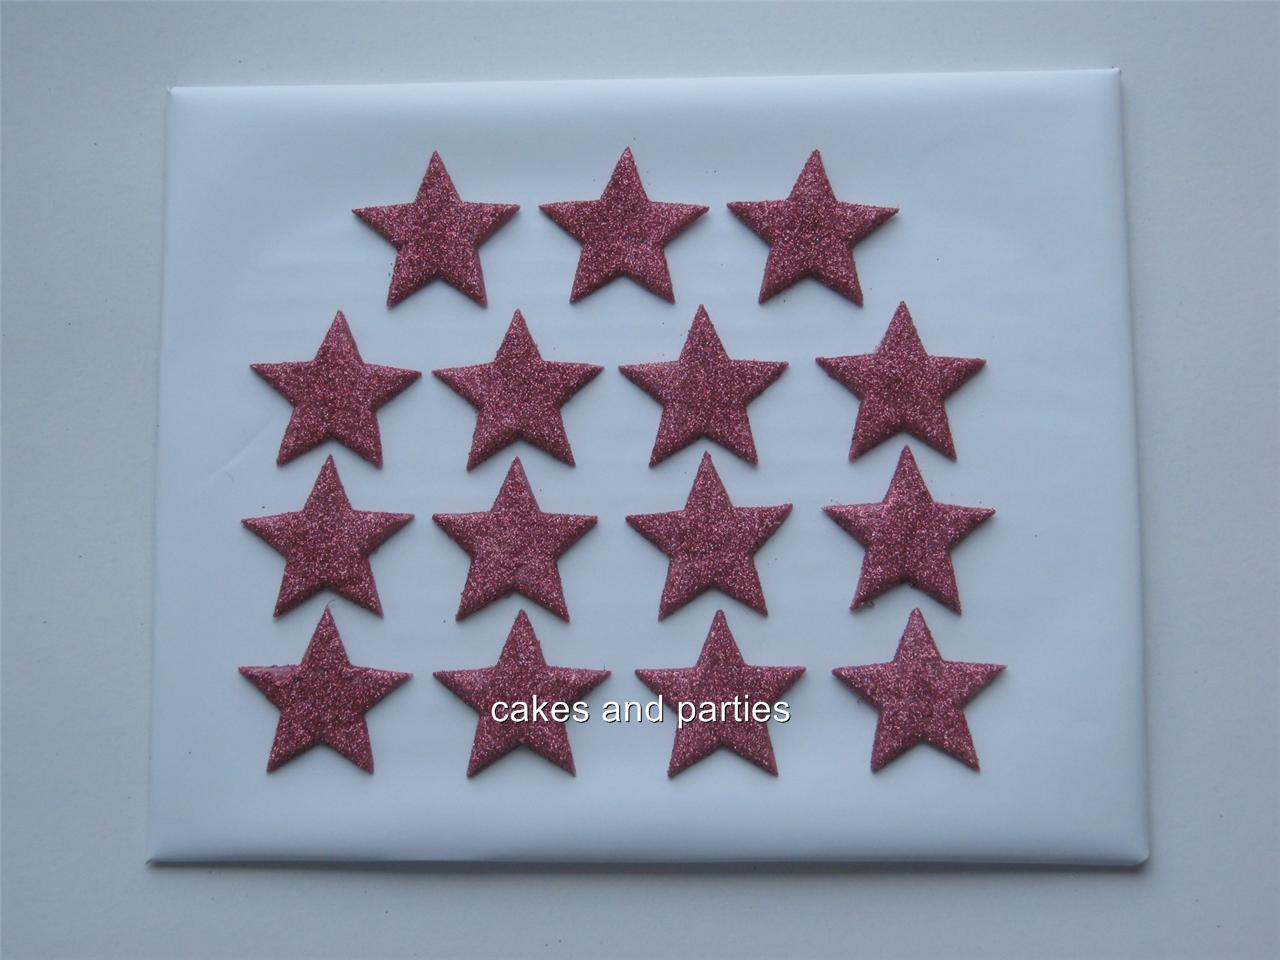 15xEDIBLE GLITTER STARS. CAKE DECORATIONS - VARIOUS ...